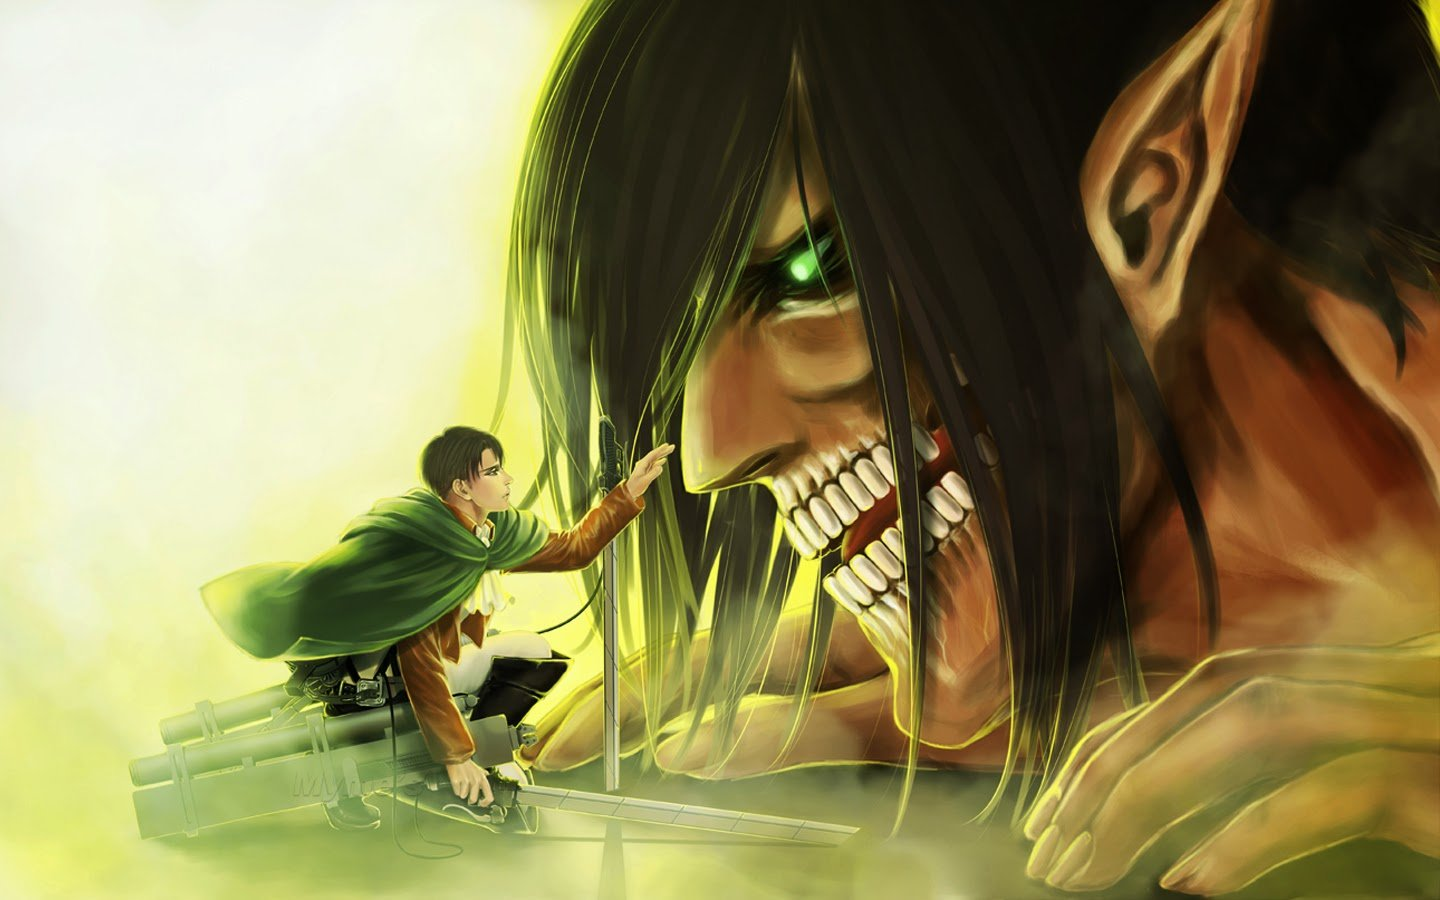 Levi Rogue Titan Eren Attack on Titan f00 HD Wallpaper 1440x900